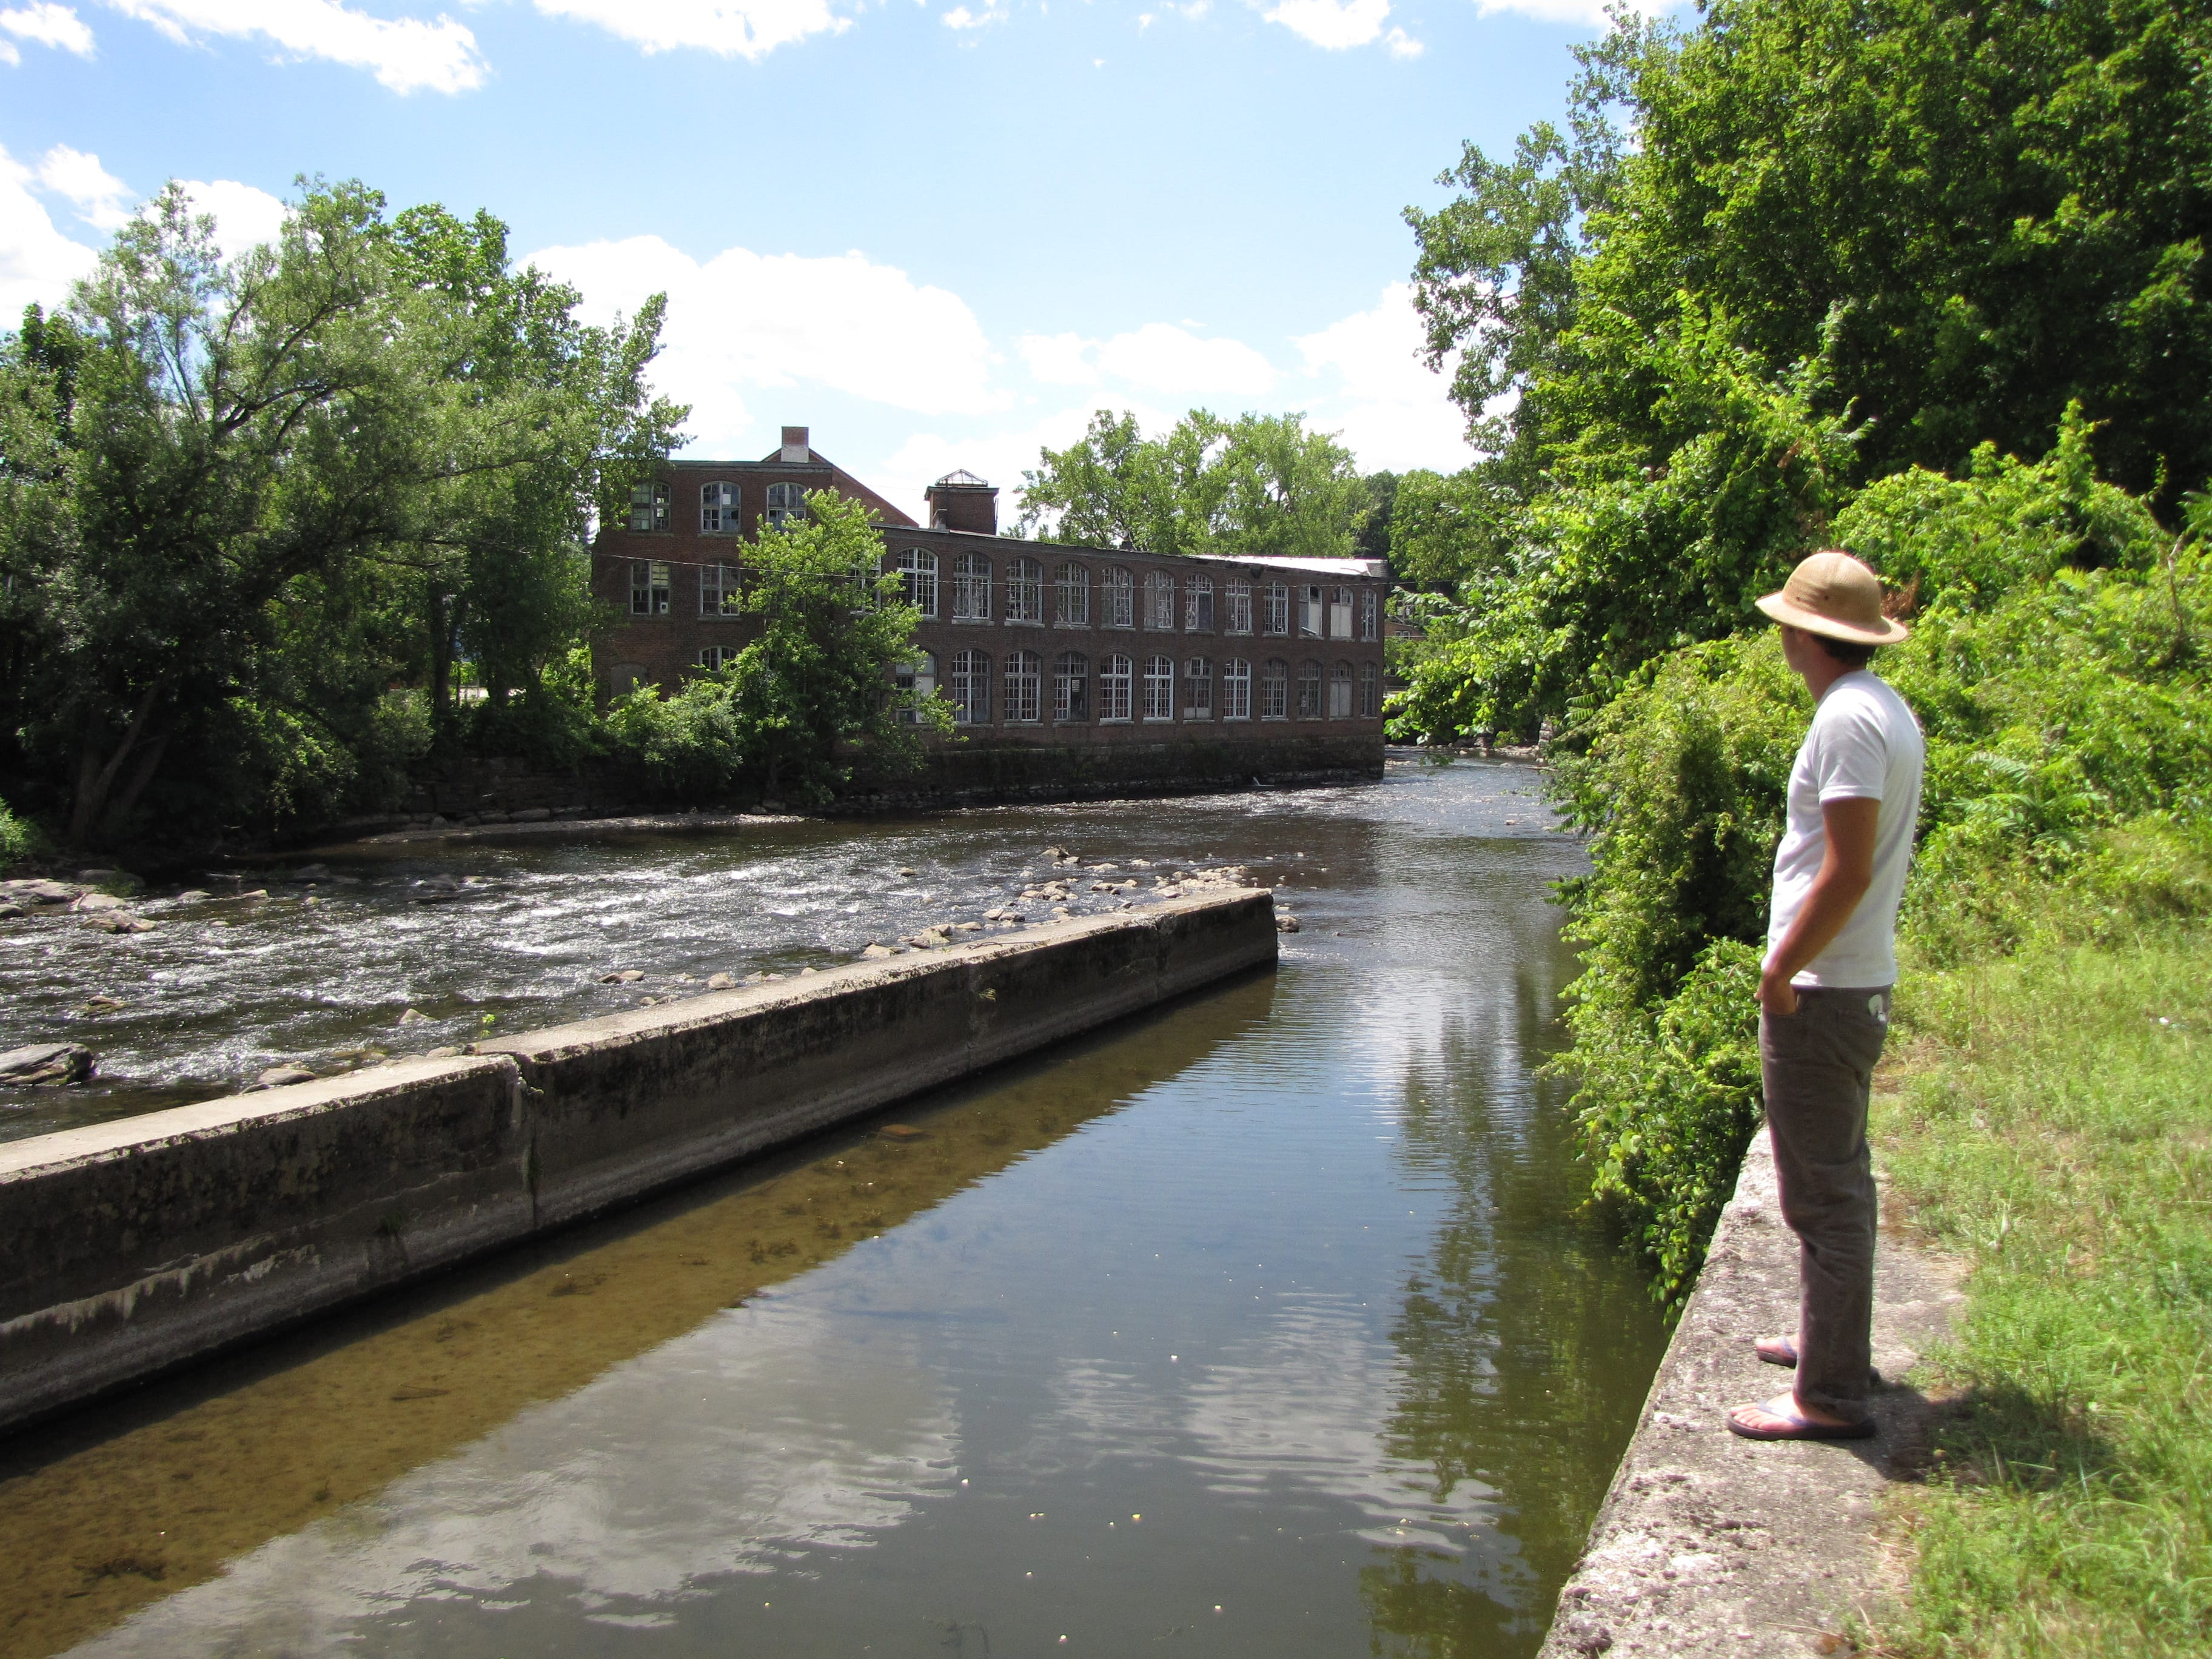 Ethan Culleton along the banks of the Housatonic River across from the mill complex, where he envisions the trail network to Flag Rock beginning. Photo: David Scribner